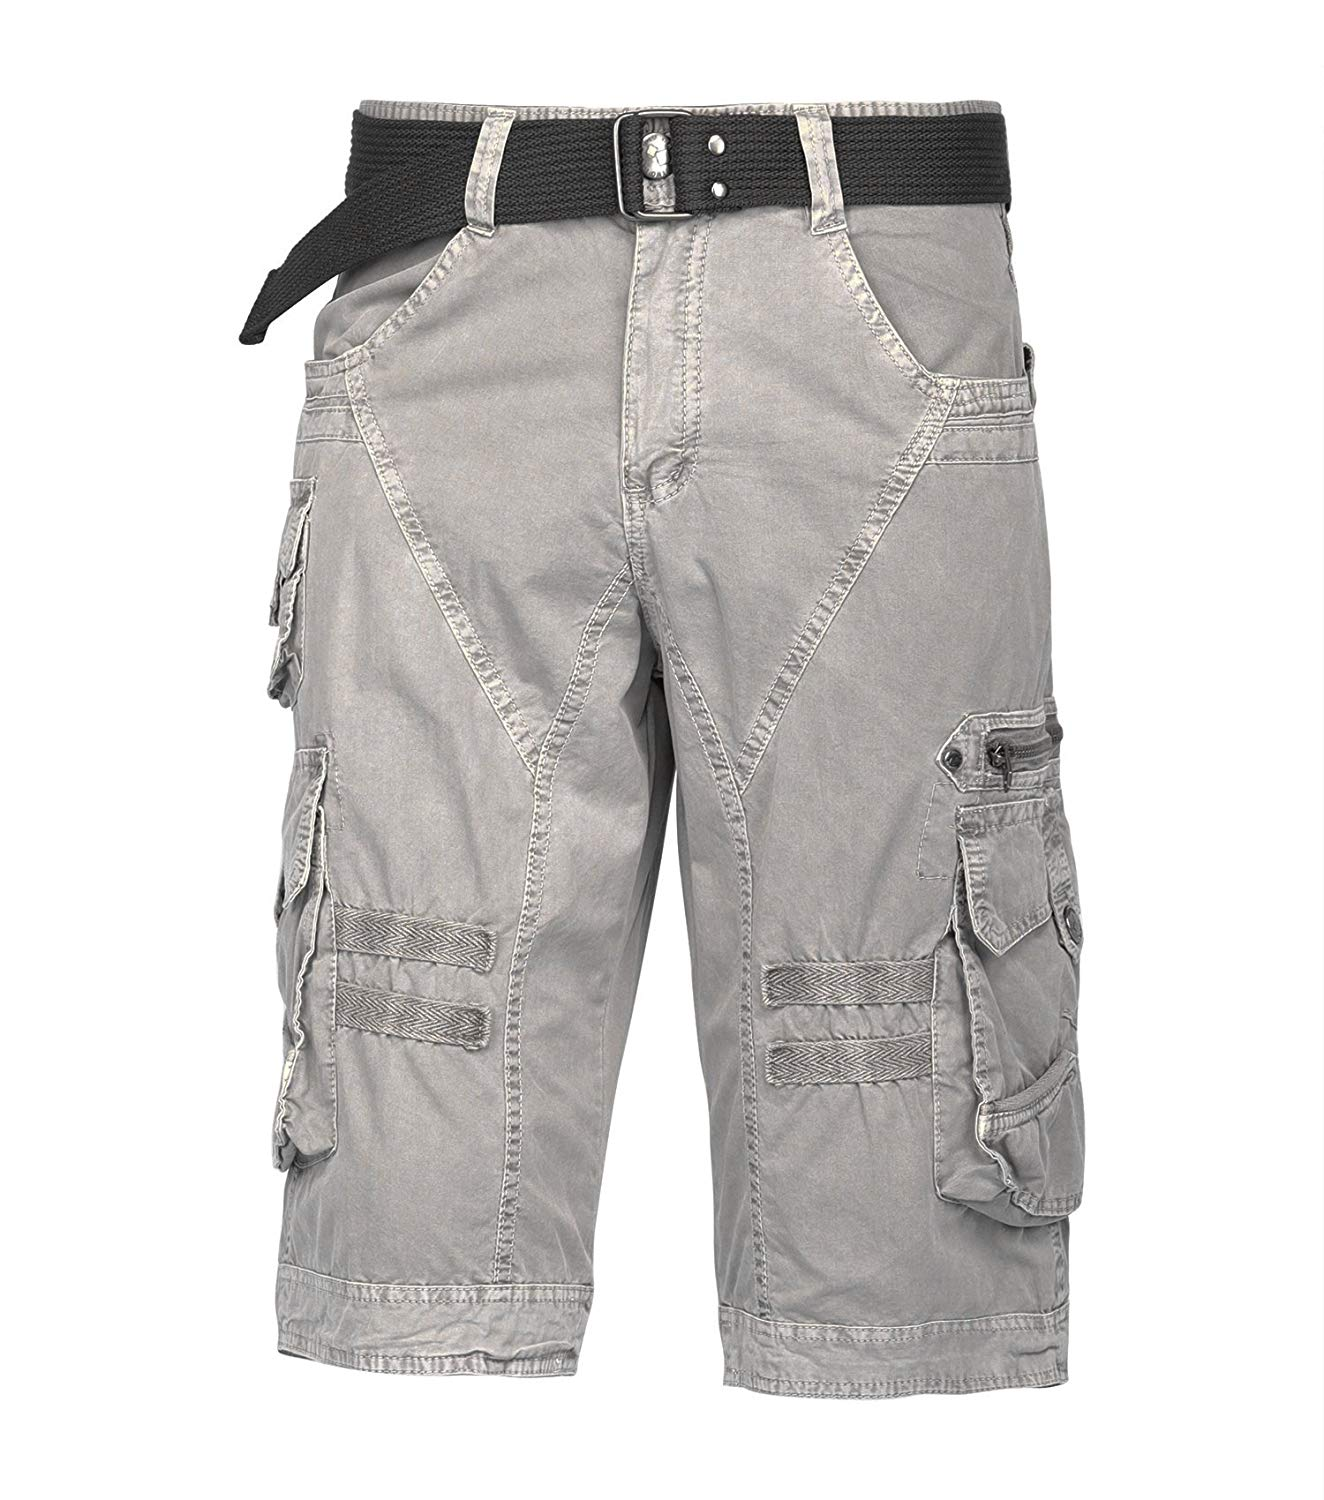 Resfeber Mens Cargo Shorts/Mens Loose Fit Athletic Twill Cargo Shorts Pants